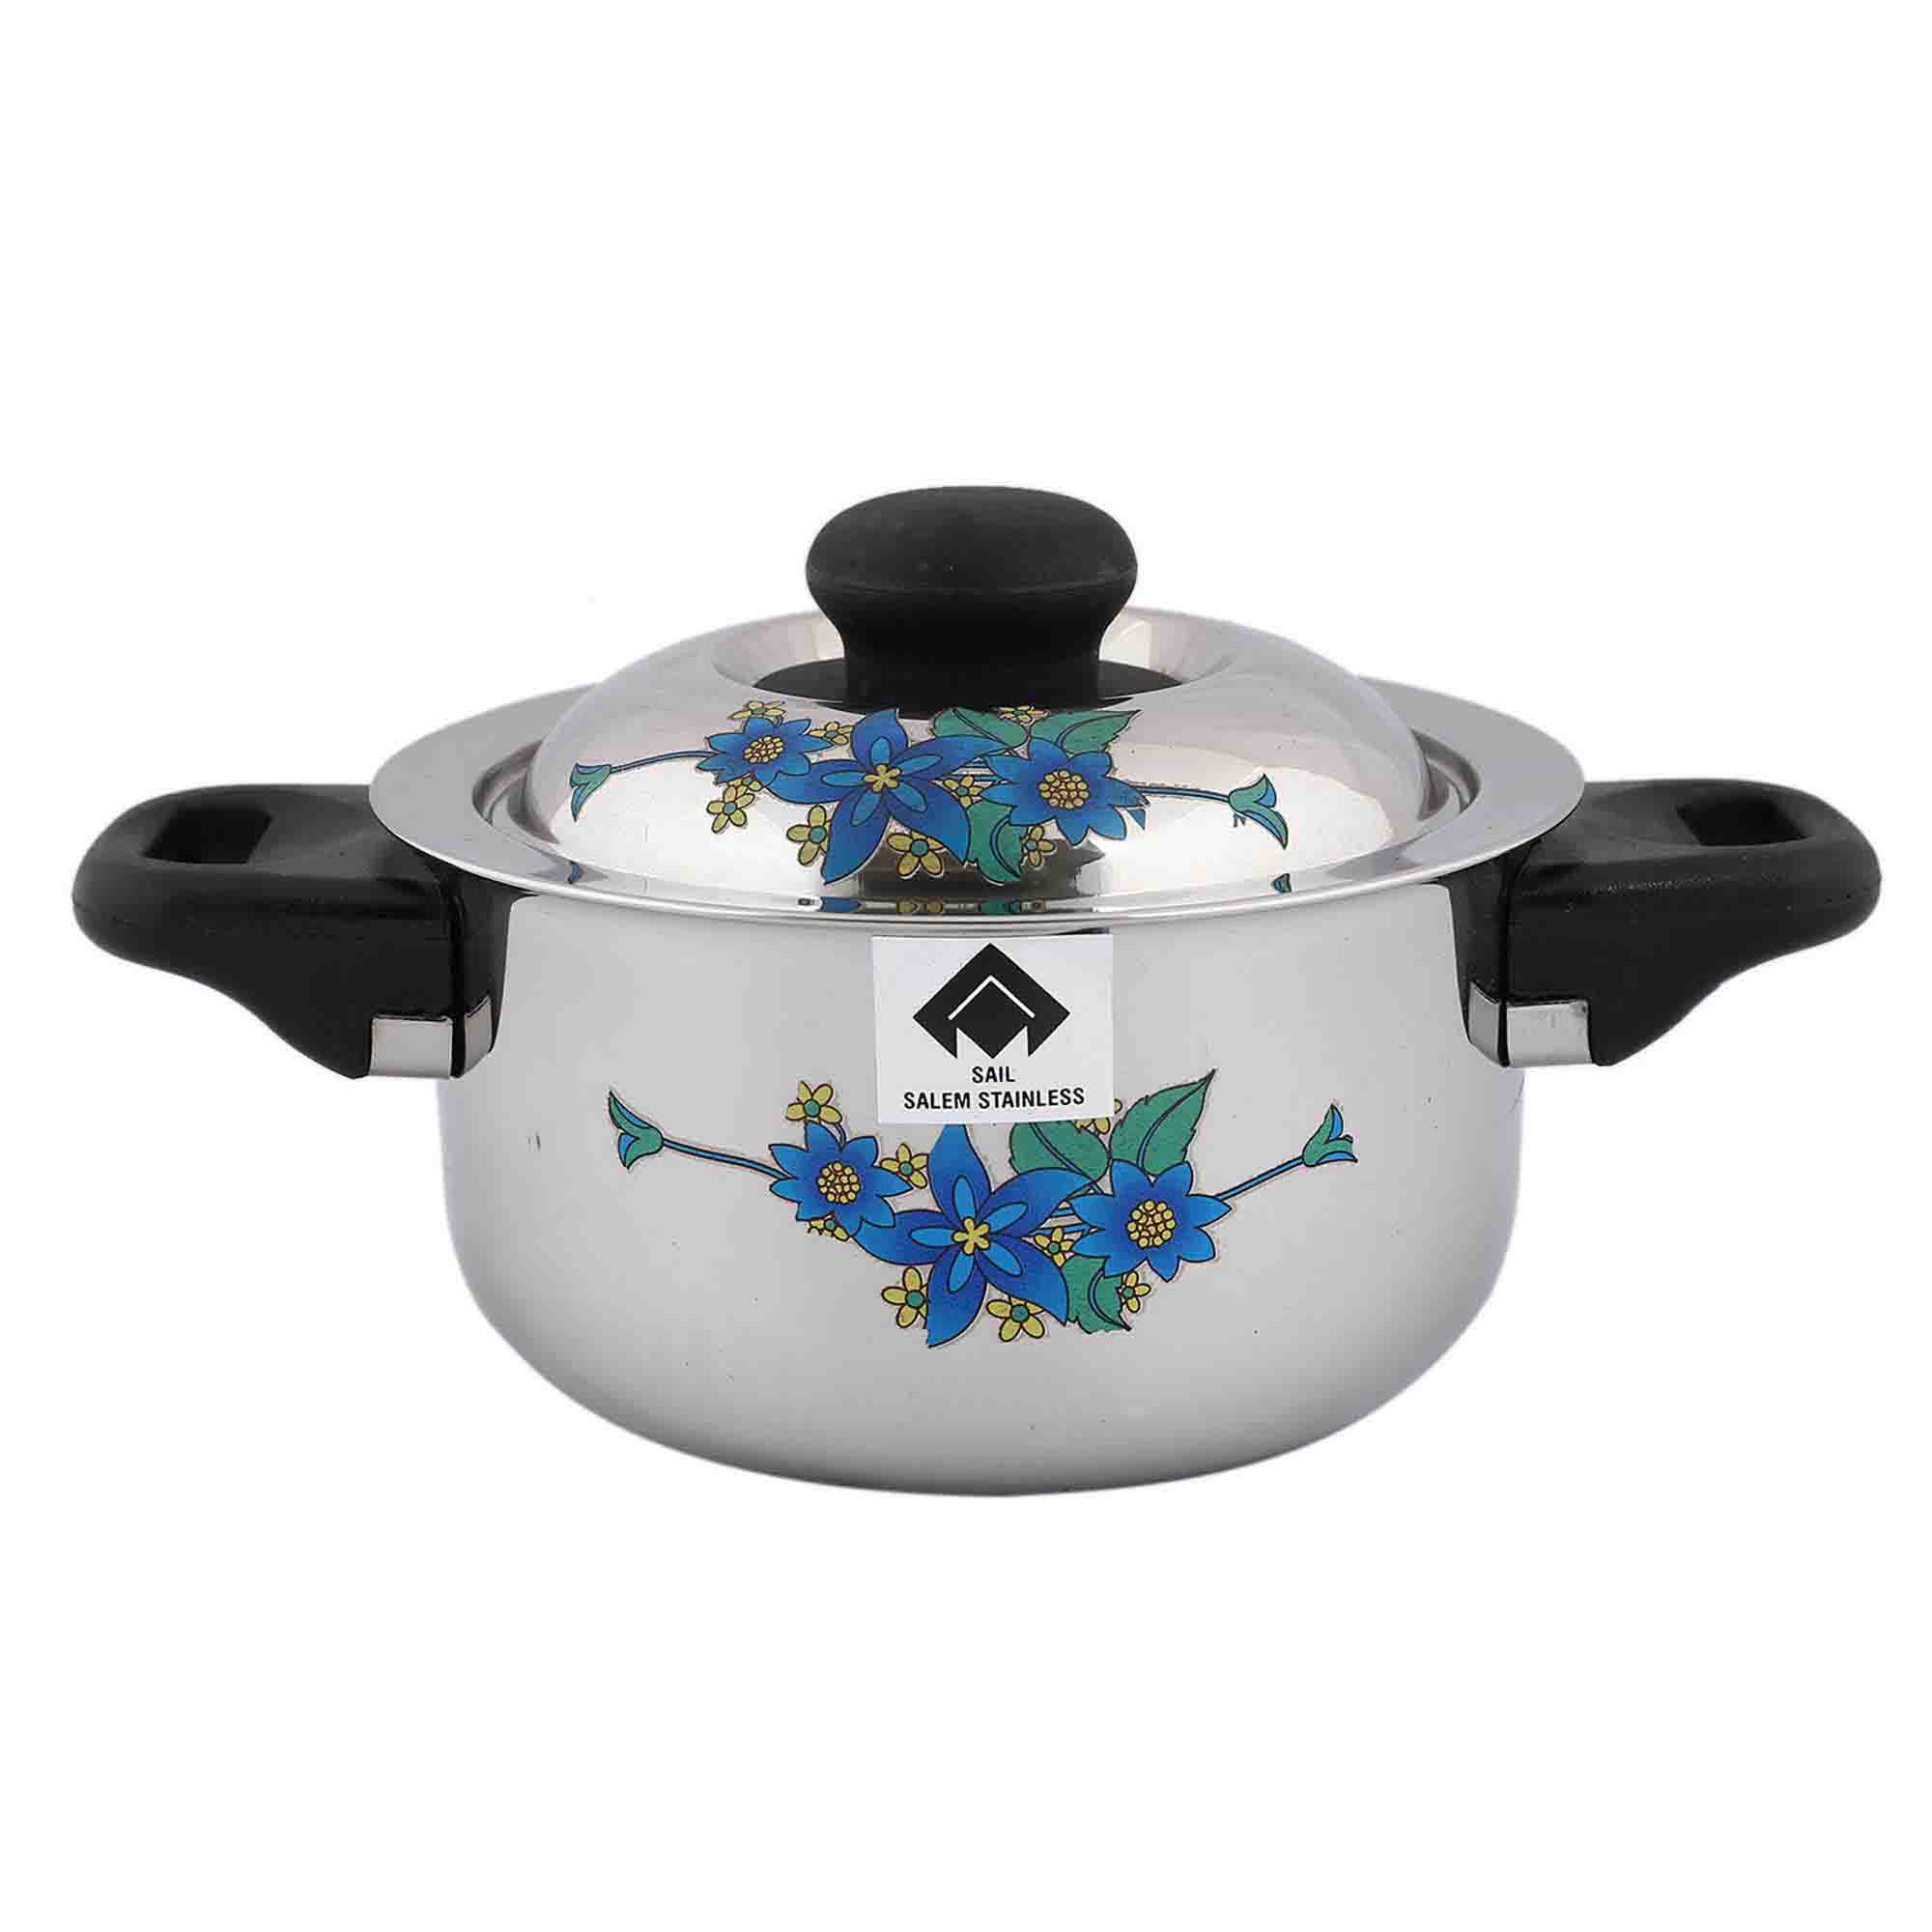 SAIL, 900 ml Casserole, SAIL SALEM Casserole, SAIL SALEM STAINLESS Casserole 900ml, Casserole 2000ml, Casserole 1500ml, SAIL SALEM Casserole 1000ml, Casserole 2500ml Hot Pot, STAINLESS Steel Casserole Casserole Dish,  Casseroles (Hot Case), Casseroles, Casseroles Hot Case, Hot Case, Hot Case Casseroles , SAIL SALEM utensils , apnagharmart , apnagharmart.com